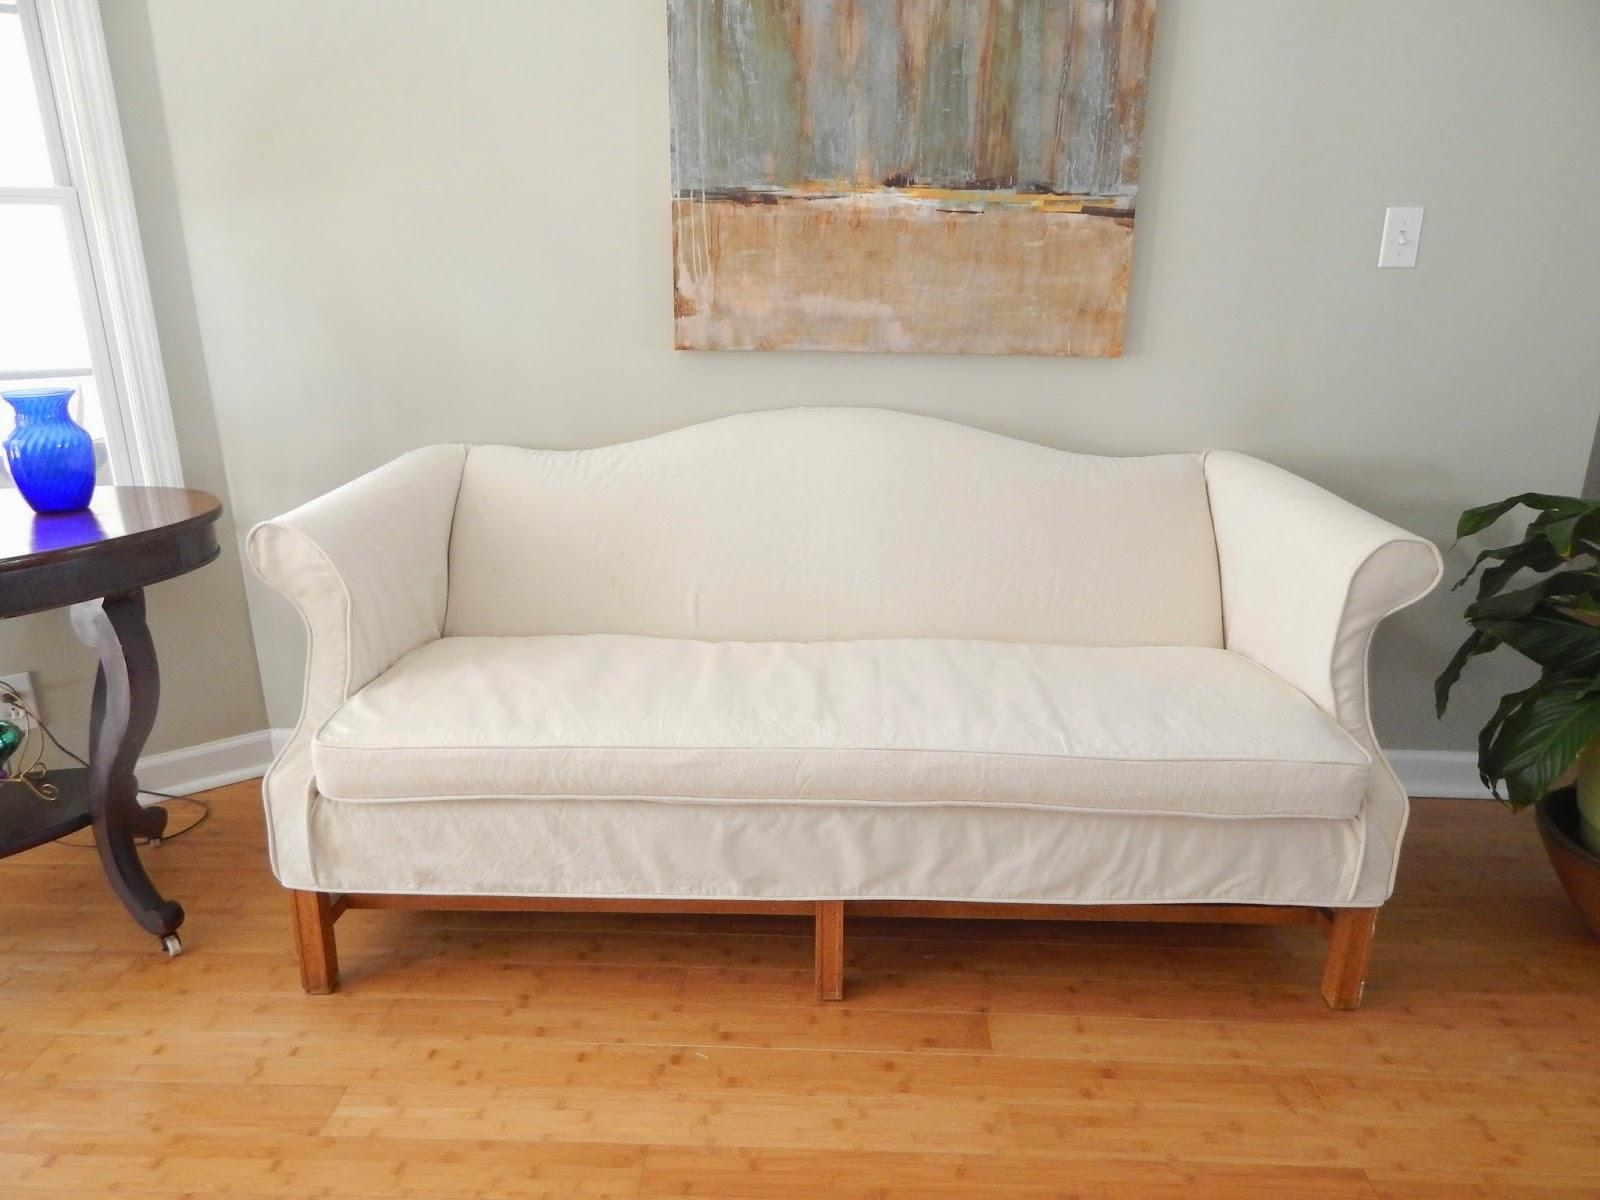 Ideas: Chic Pottery Barn Slipcovers For Better Sofa And Chair Look With Regard To Pottery Barn Chair Slipcovers (Image 8 of 20)